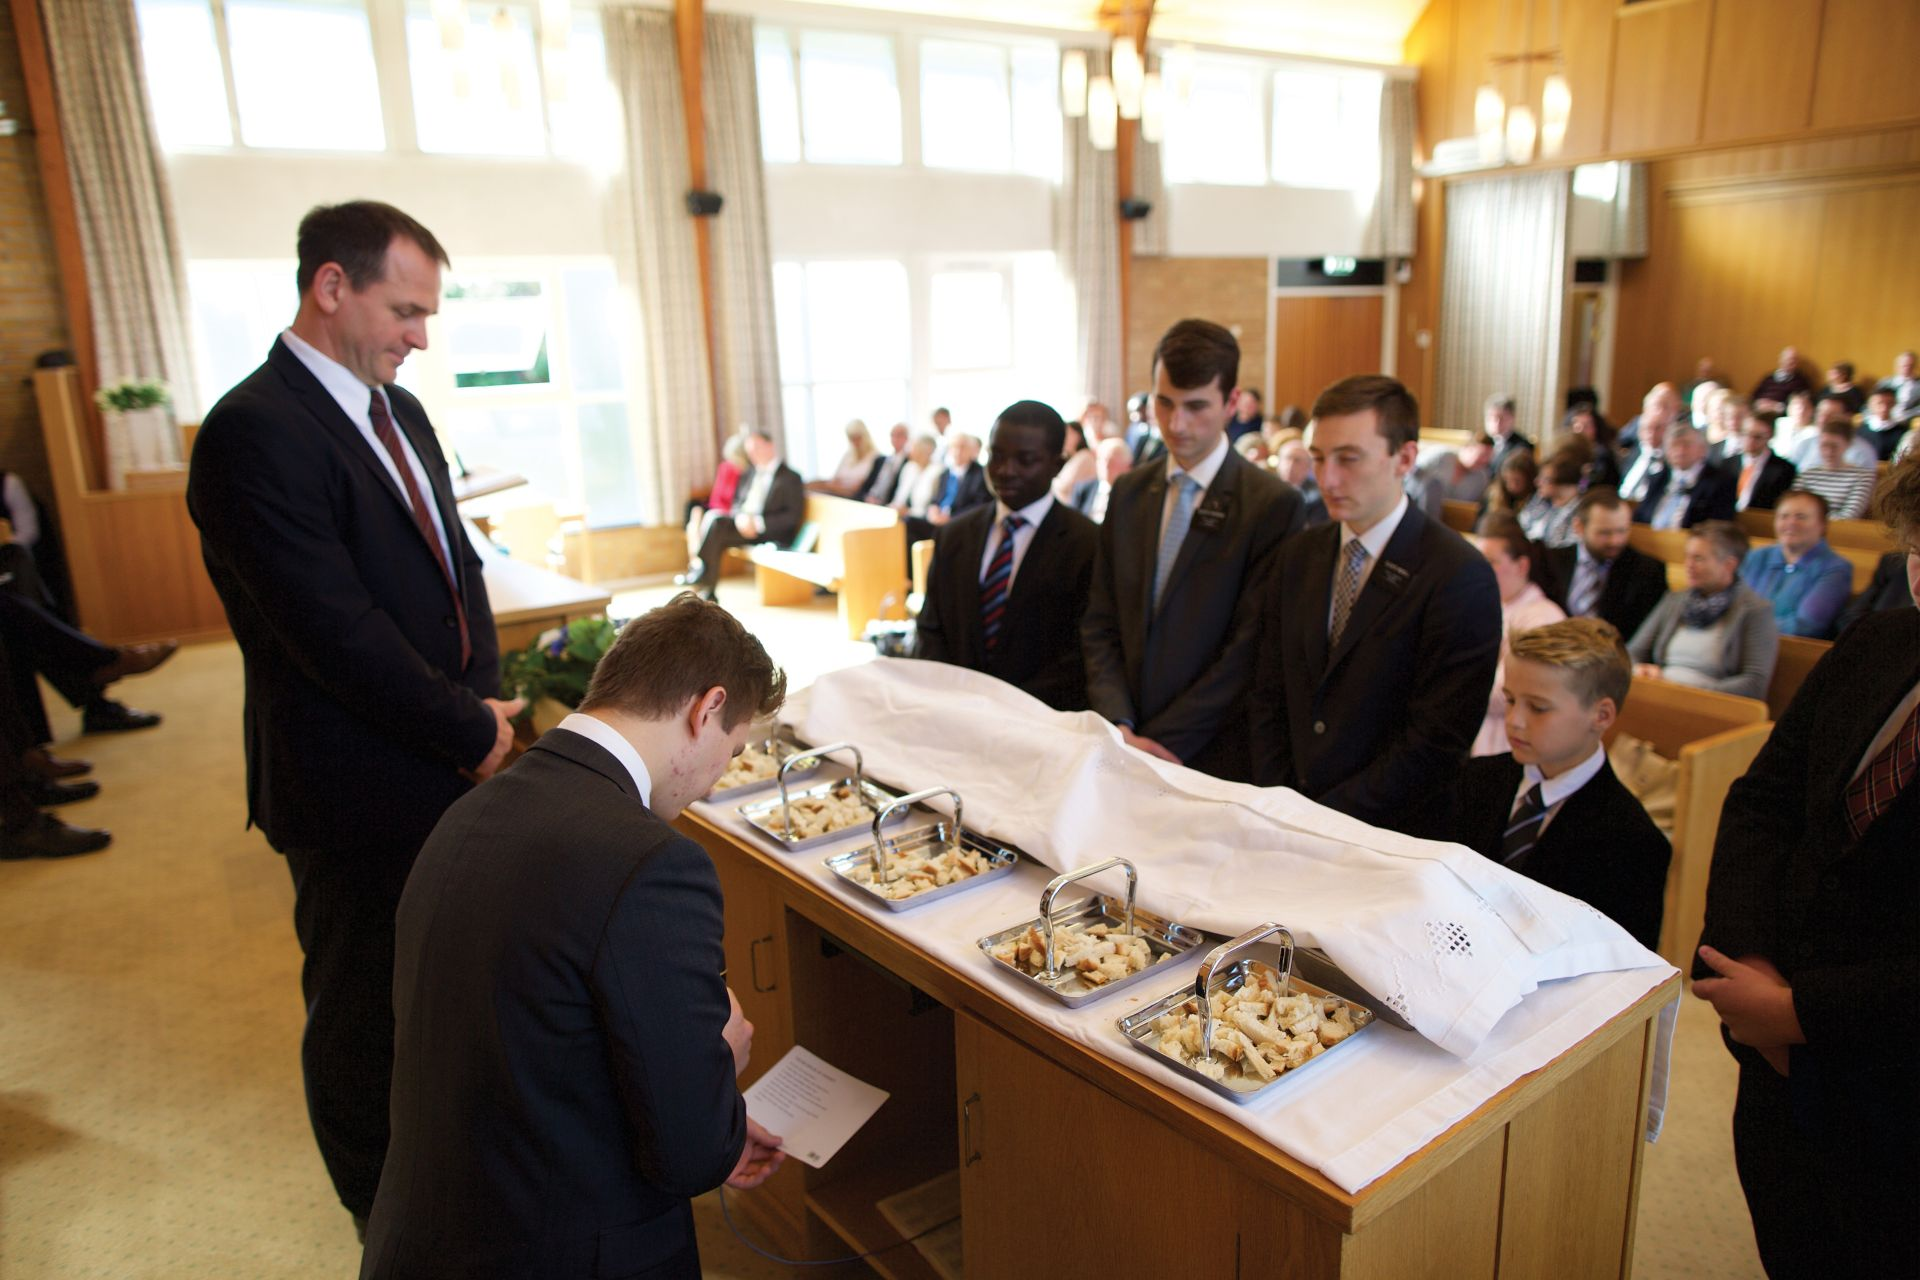 norway_sacrament_meeting_blessing_bread.